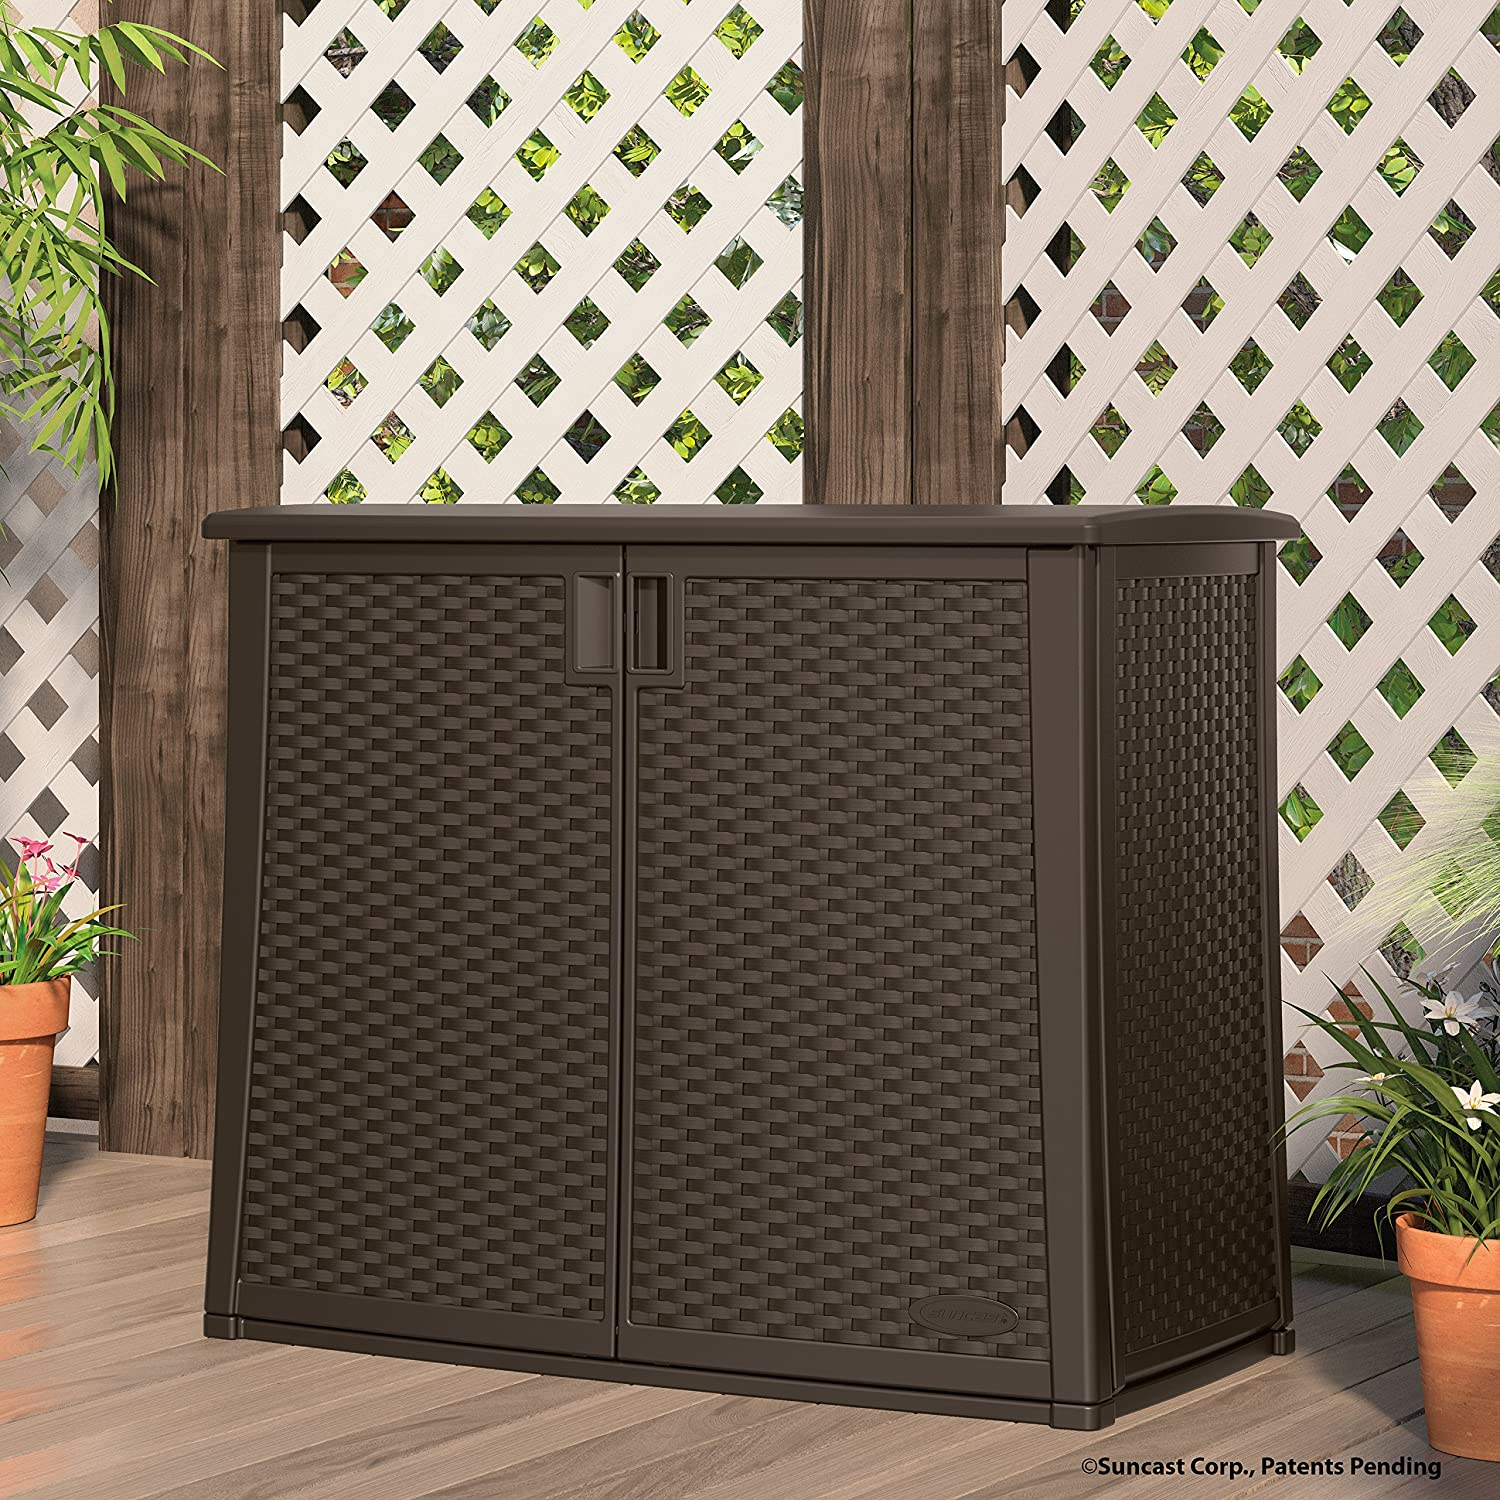 Amazon.com  Suncast Elements Outdoor 40-Inch Wide Cabinet  Garden u0026 Outdoor & Amazon.com : Suncast Elements Outdoor 40-Inch Wide Cabinet ... Aboutintivar.Com